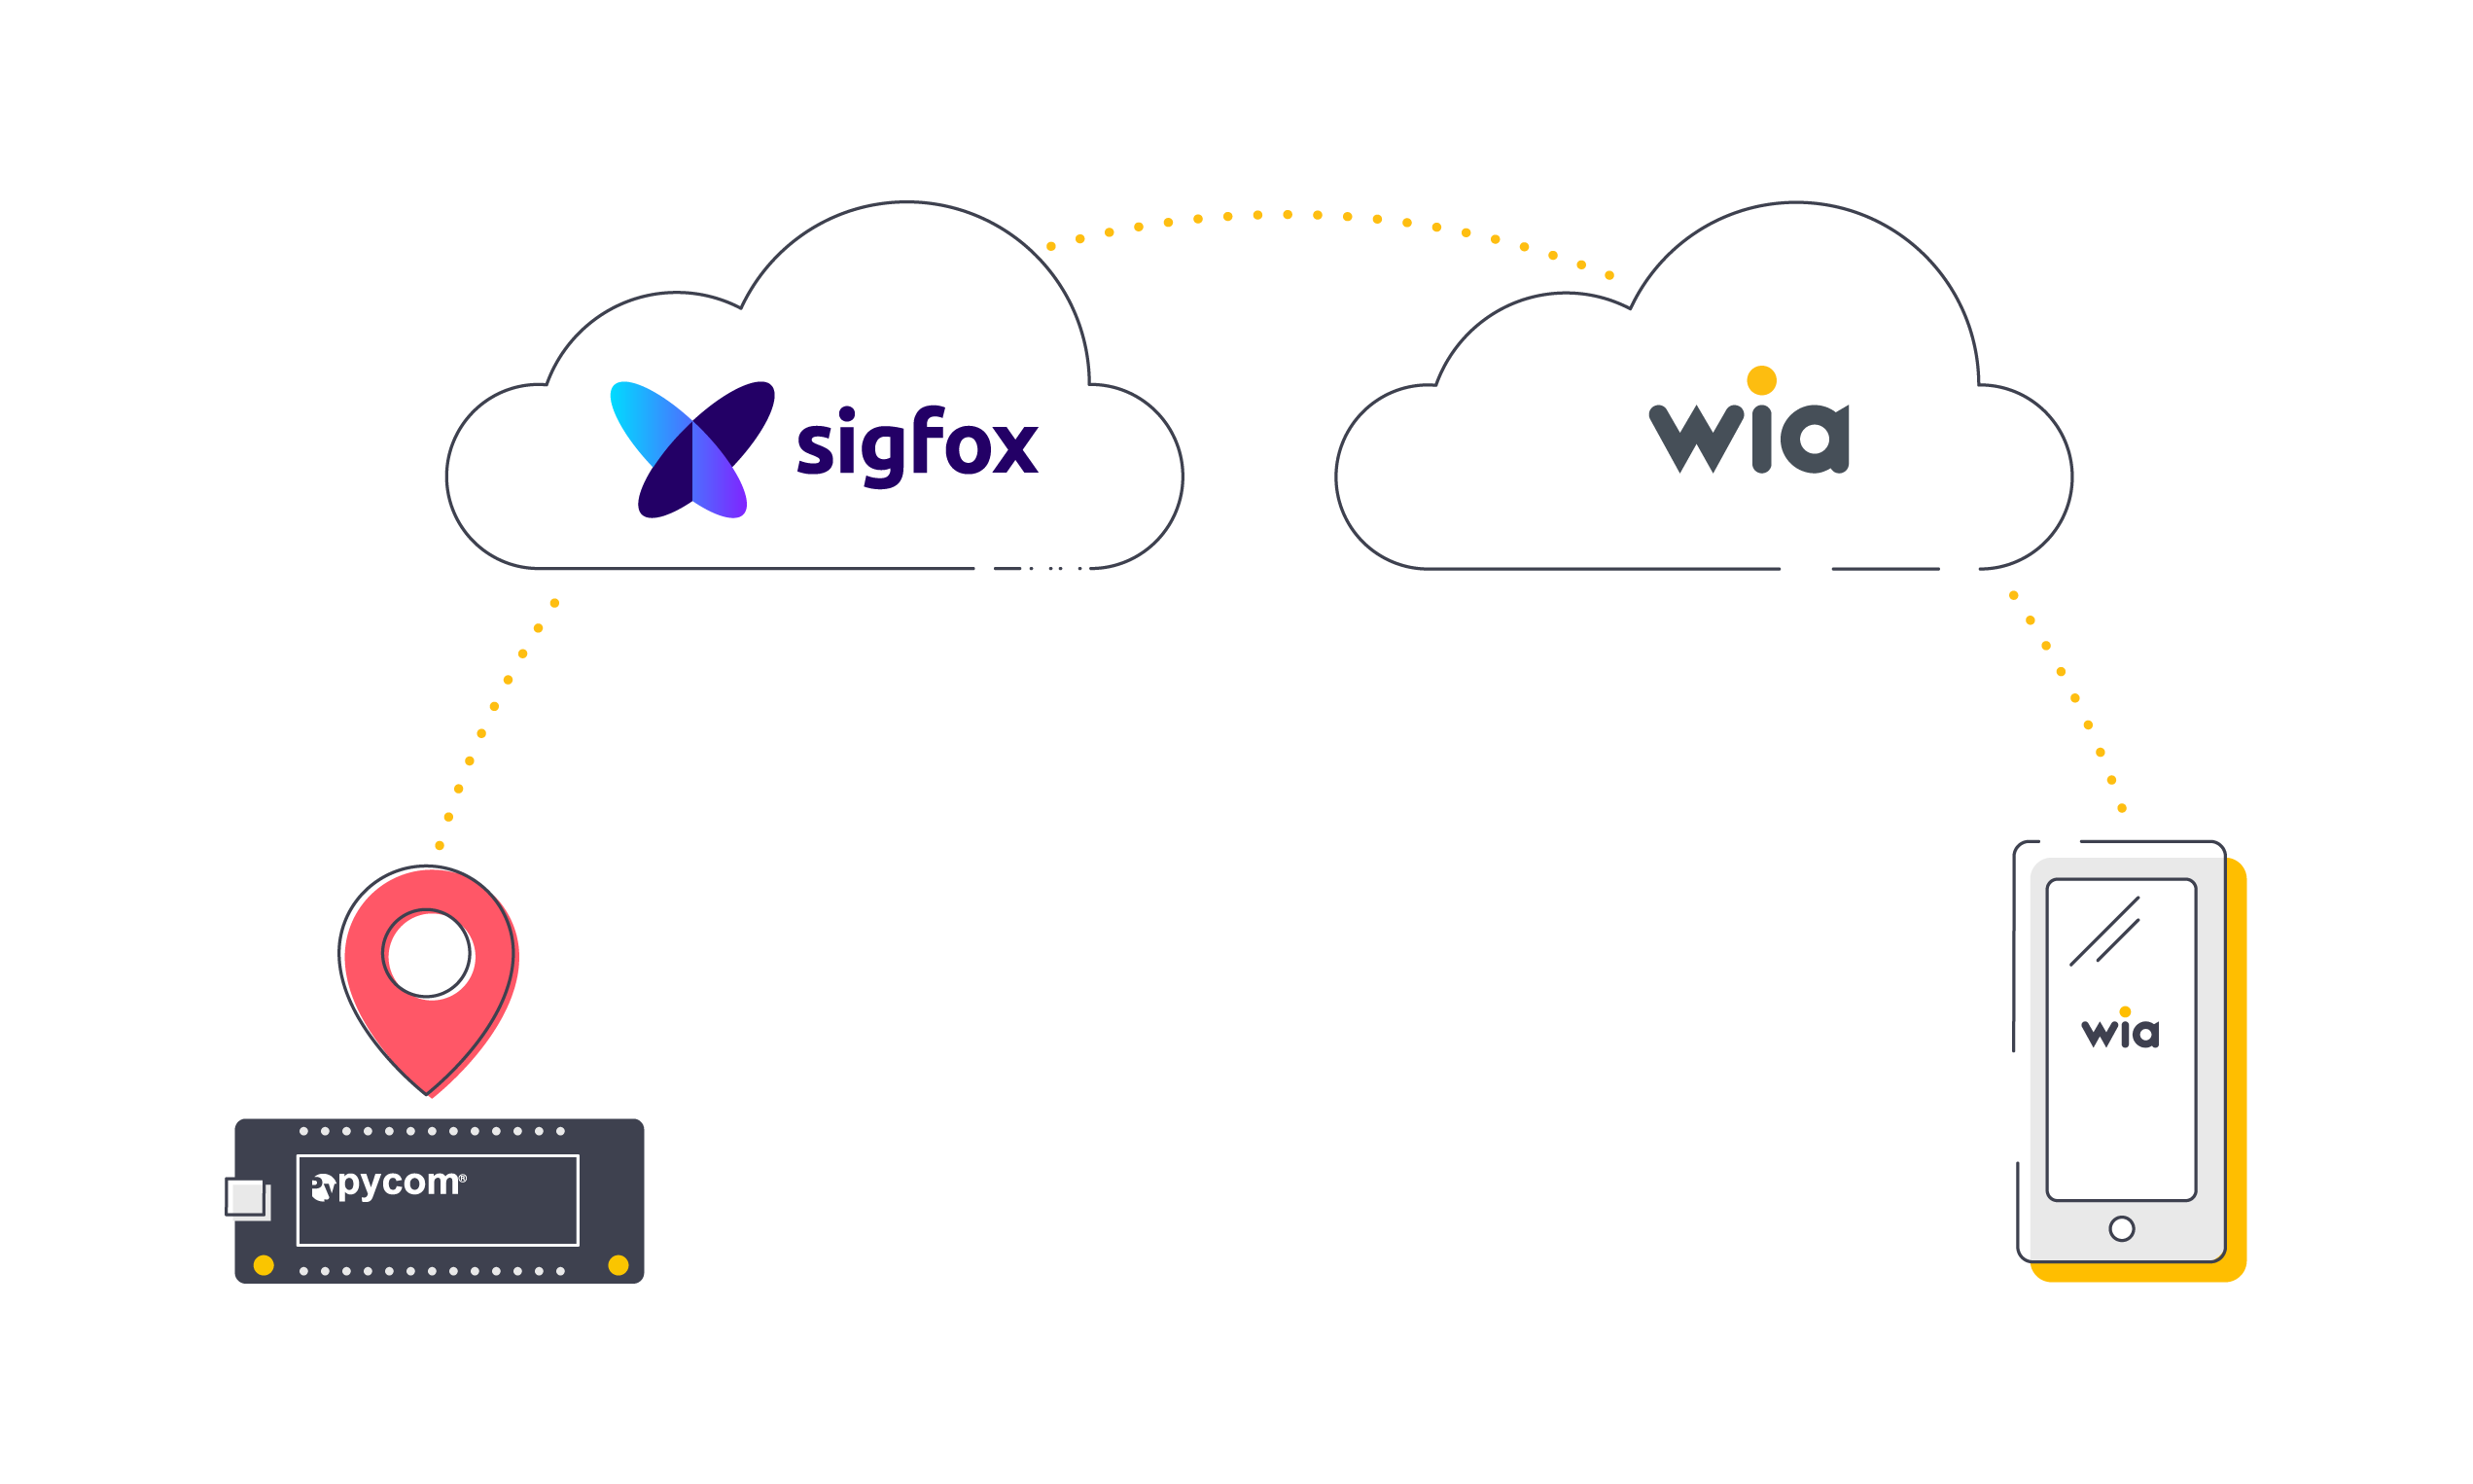 Build an End-to-End Sigfox GPS Tracker Using Wia and Pycom